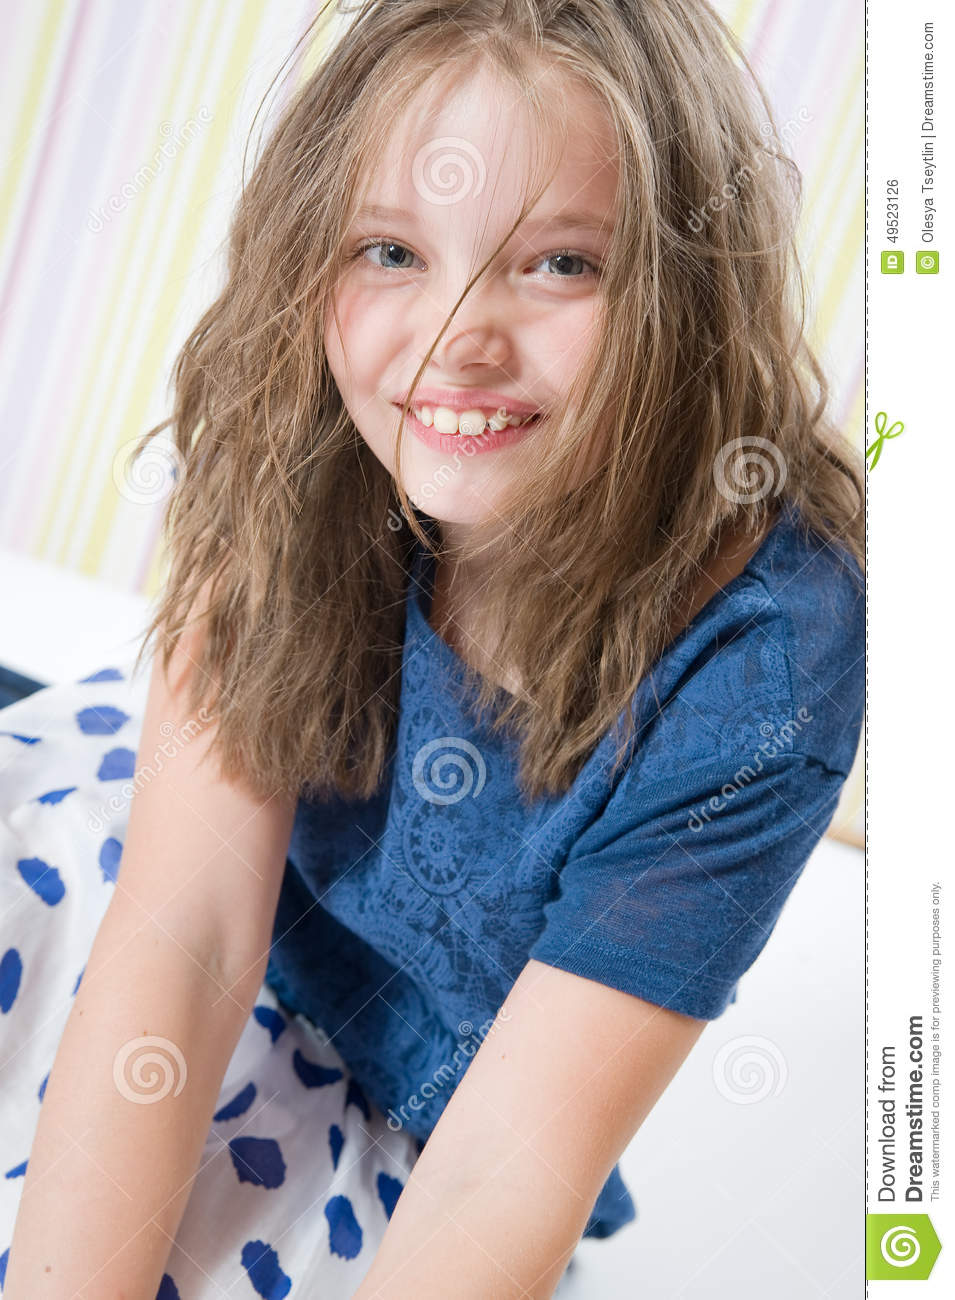 8 Year Boy Bedroom Design: Portrait Of A Smiling 8 Year Old Girl In A Hat Stock Photo